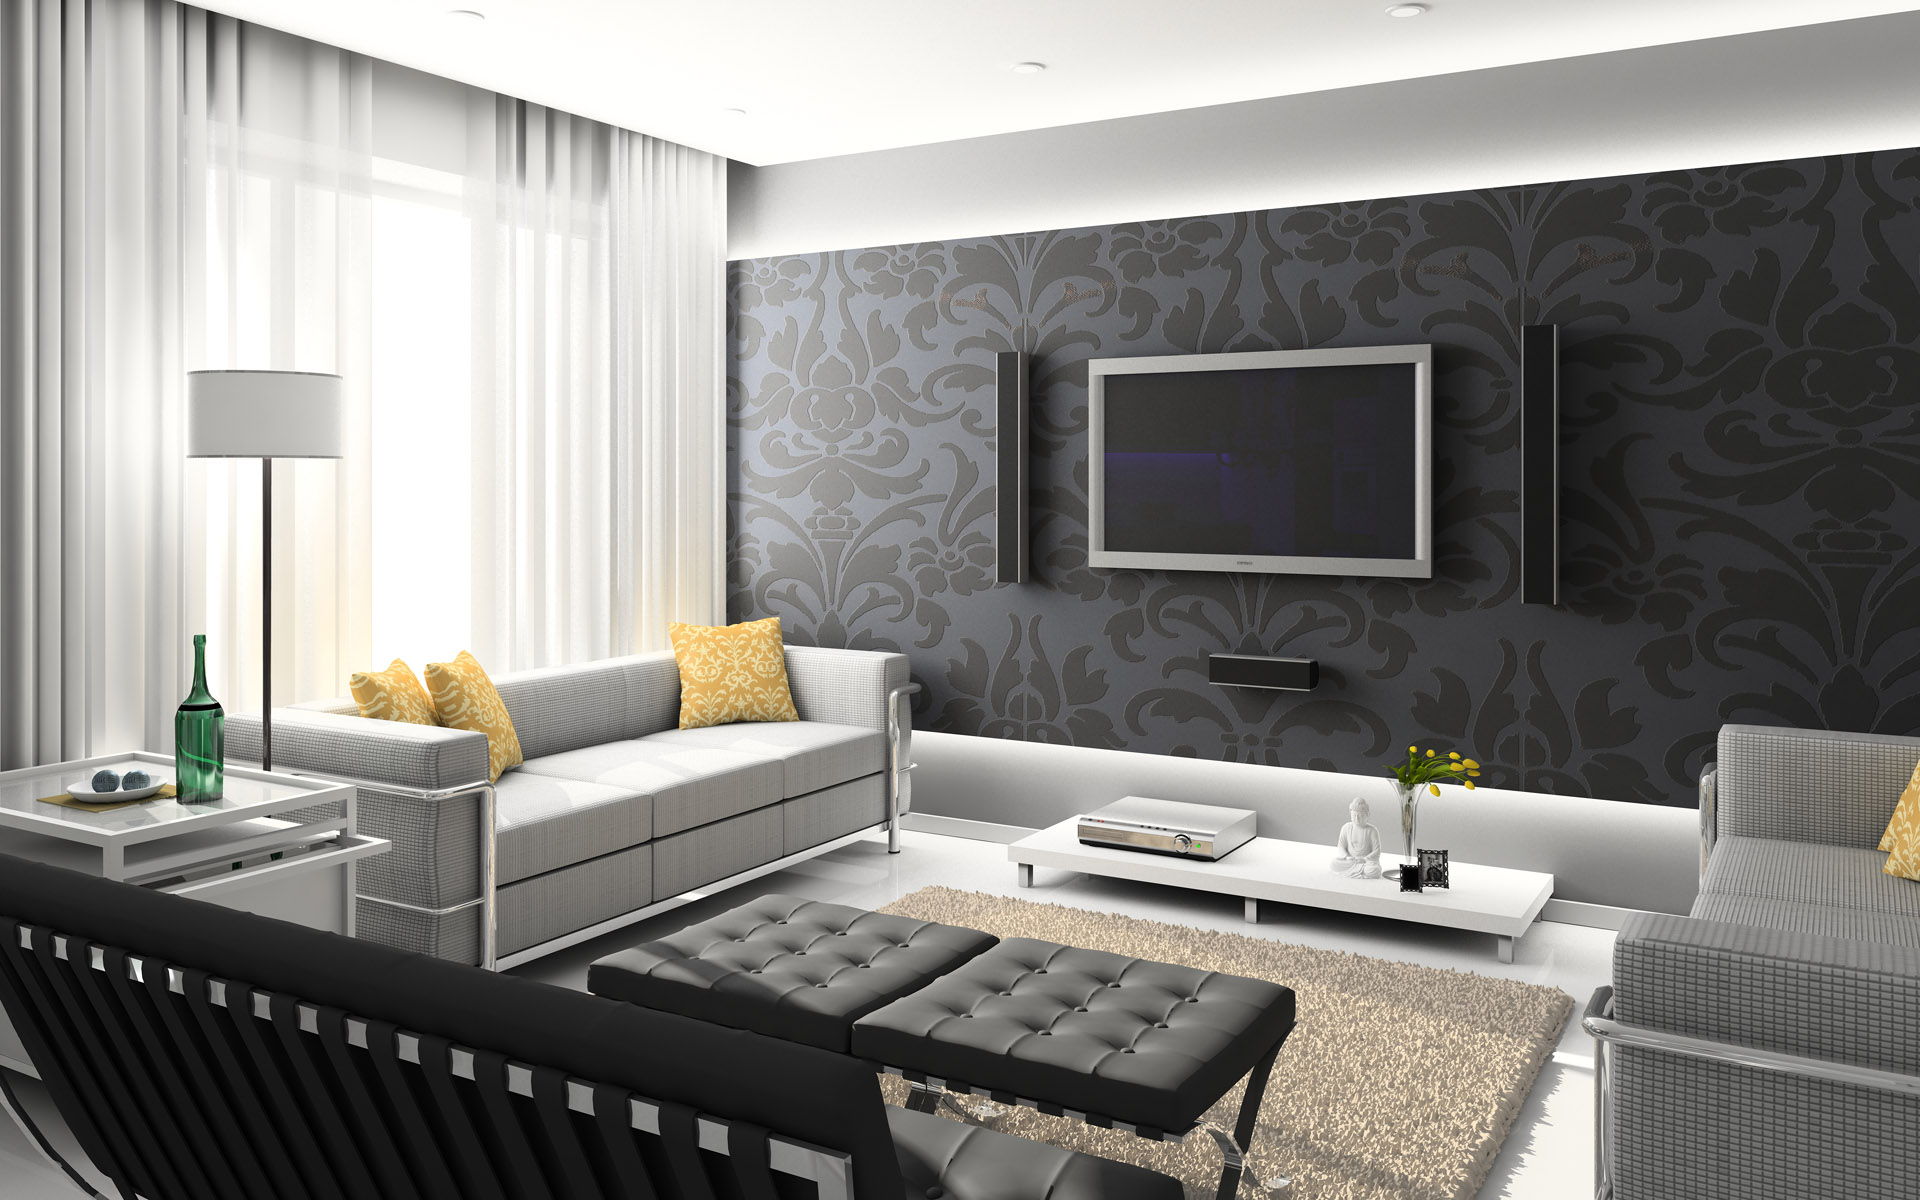 Rate Of Wallpaper For Home